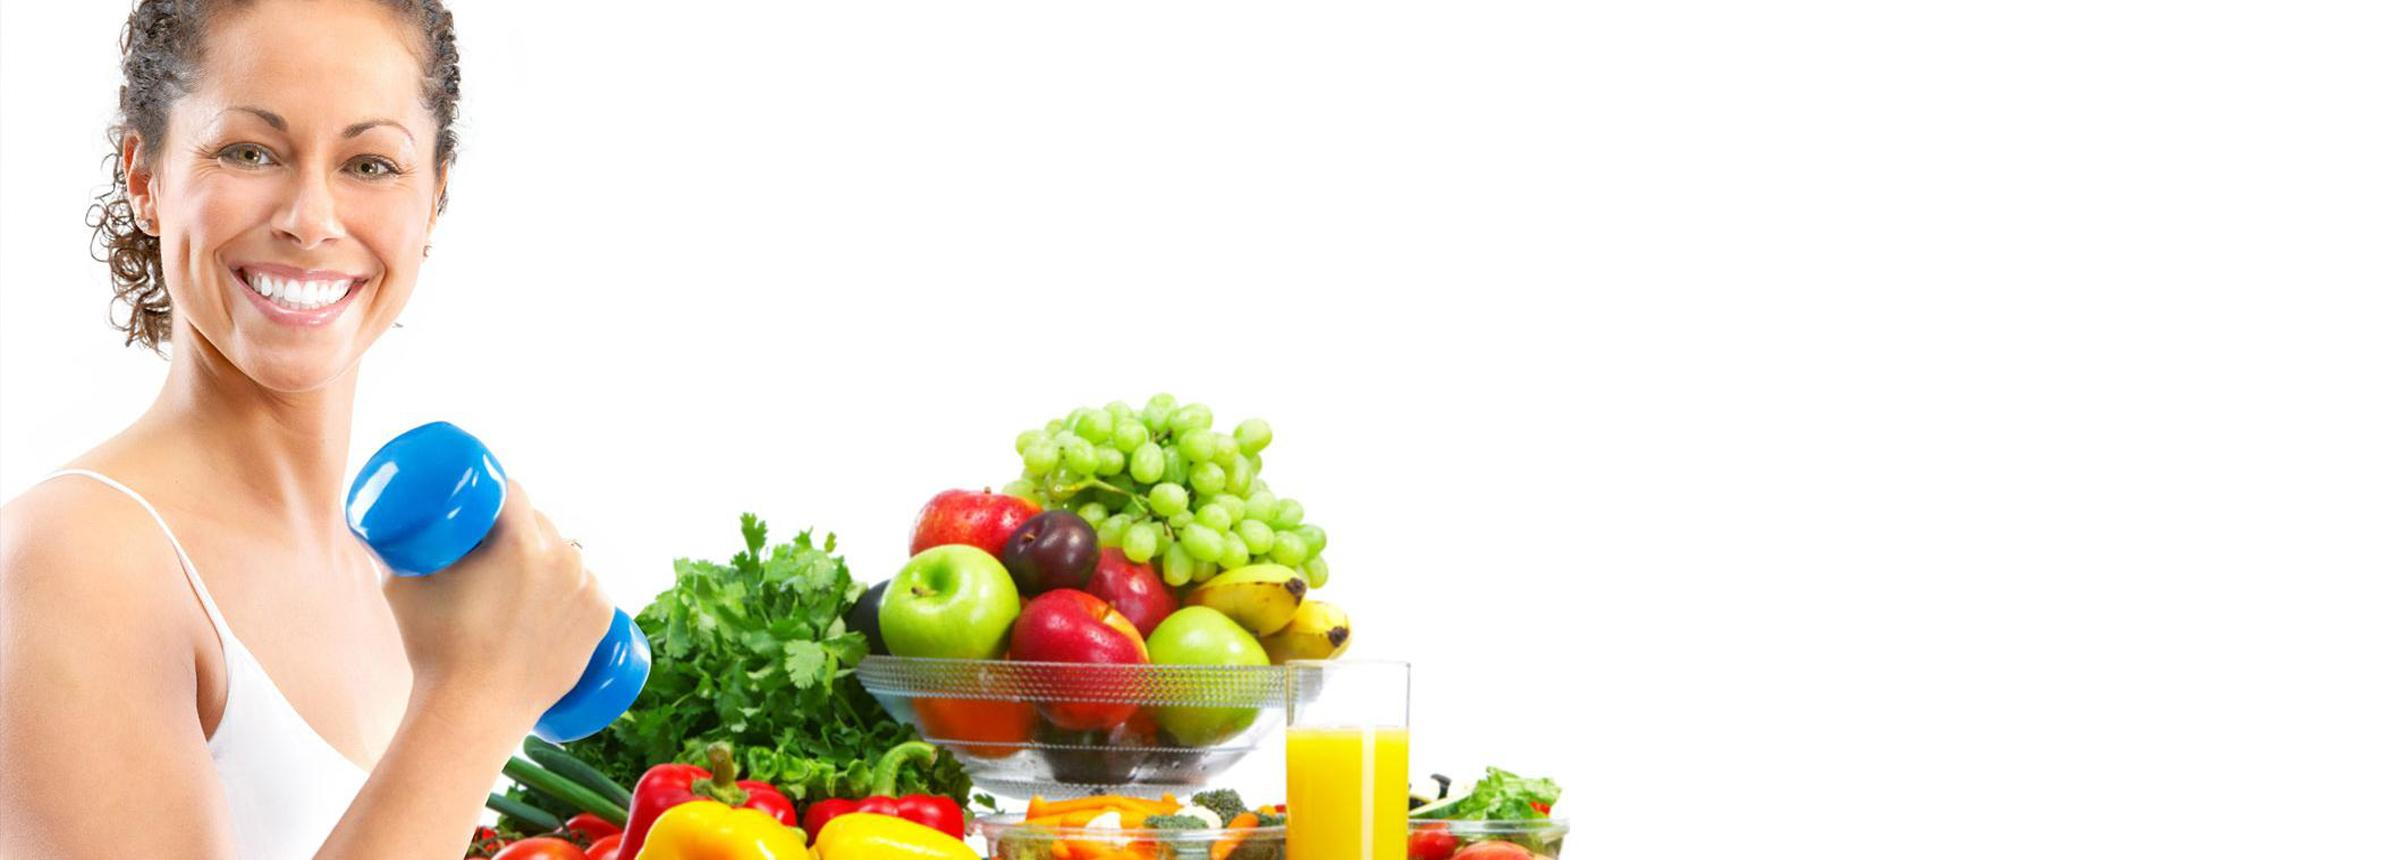 <p>Let food be thy medicine and medicine be thy food...</p>